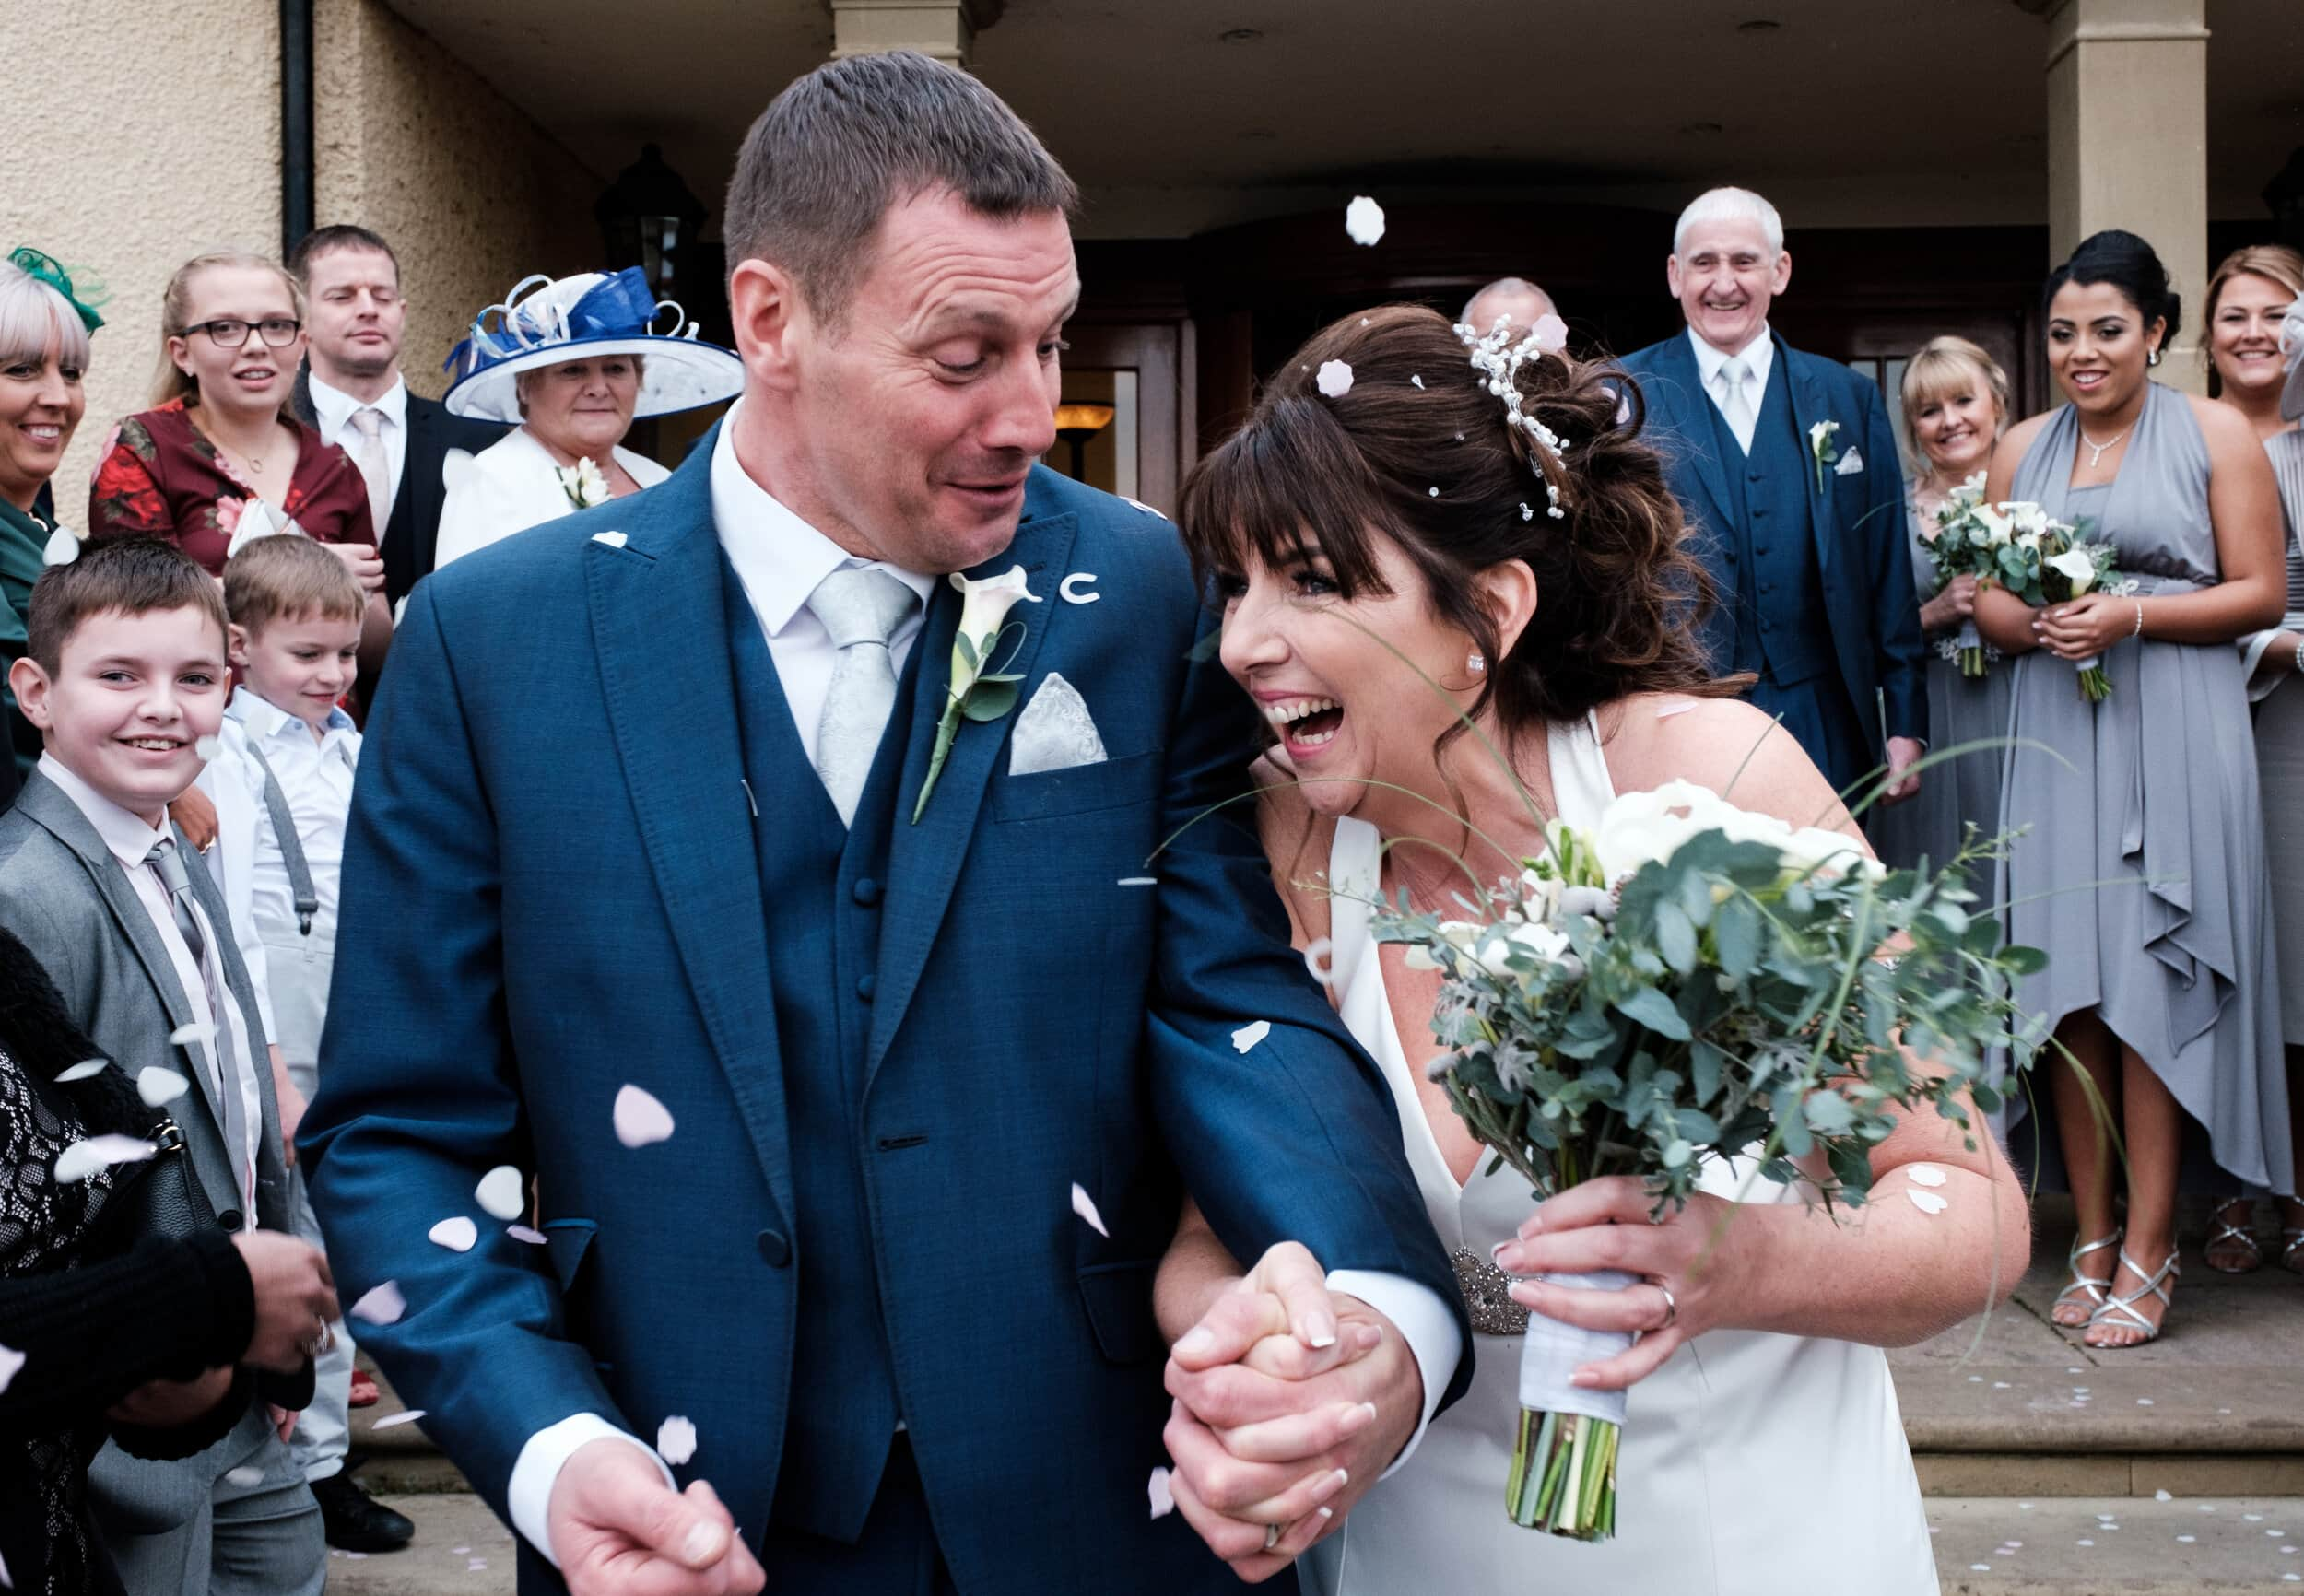 Leanne and Paul | Hardwick Hall Wedding Photographer